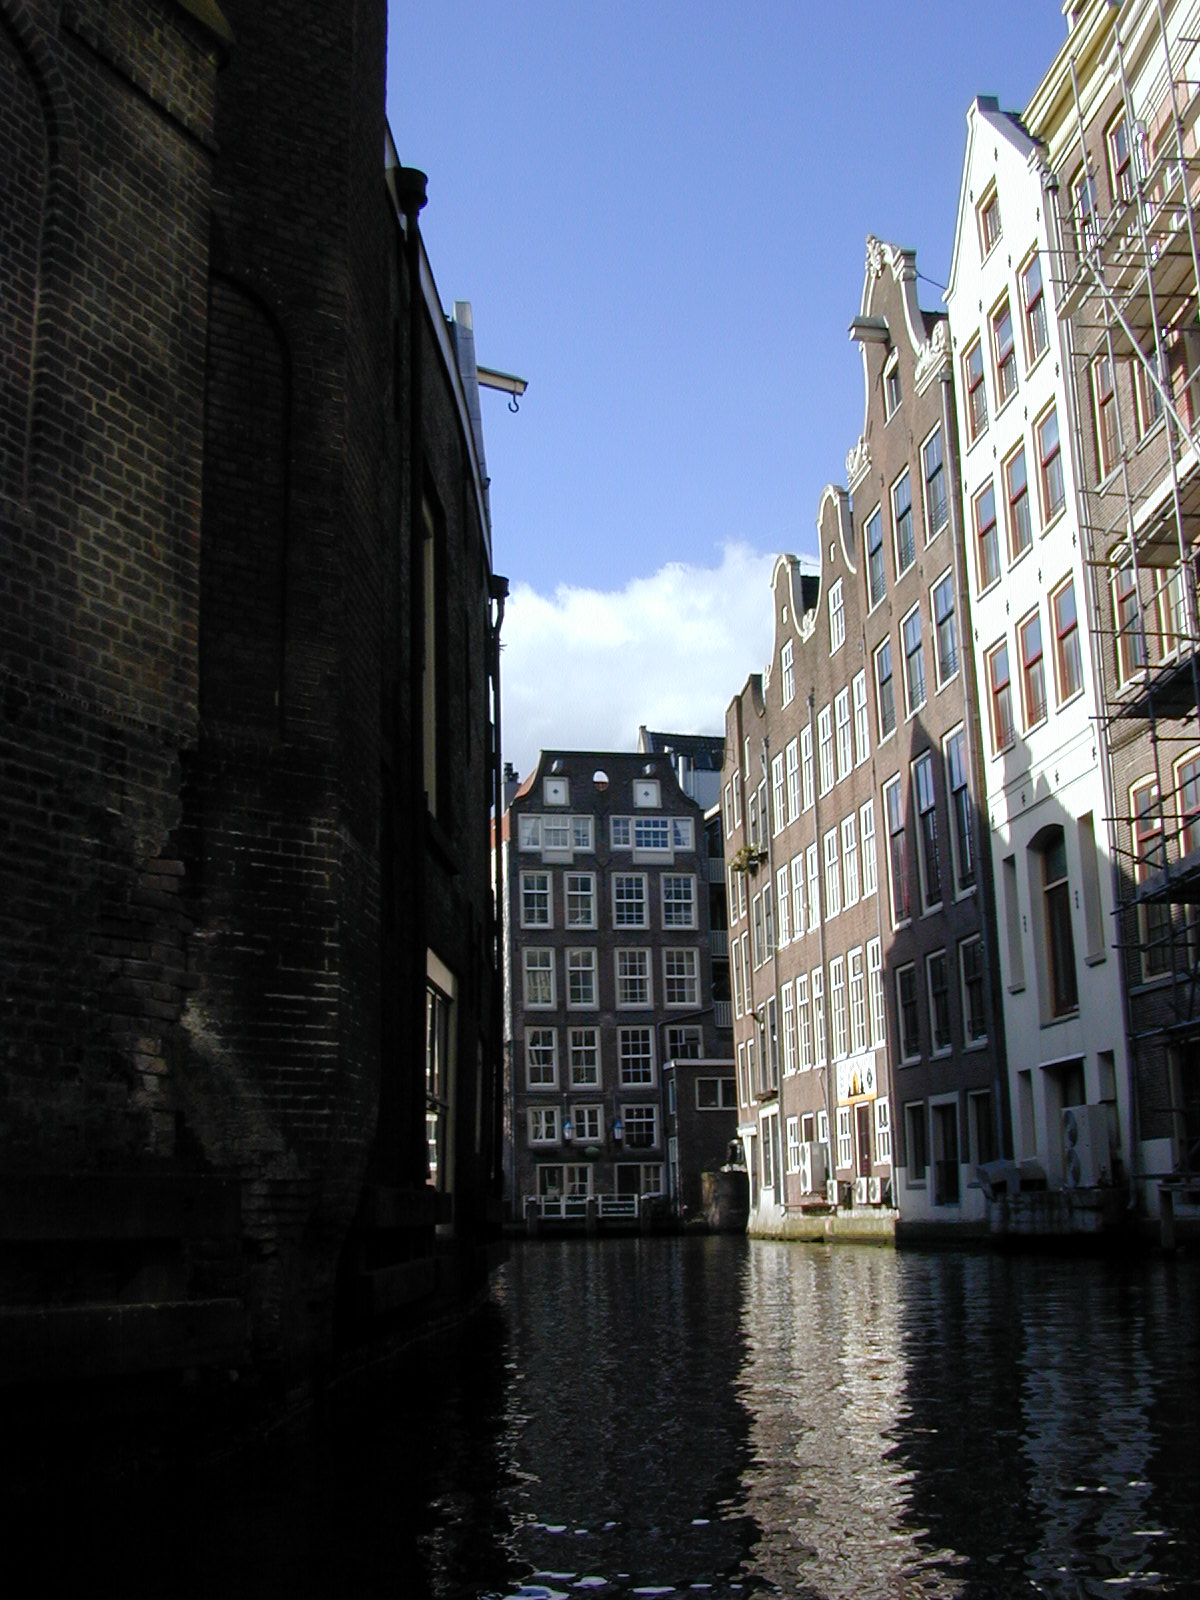 amsterdam holland the netherlands canal canals houses tall buildings water